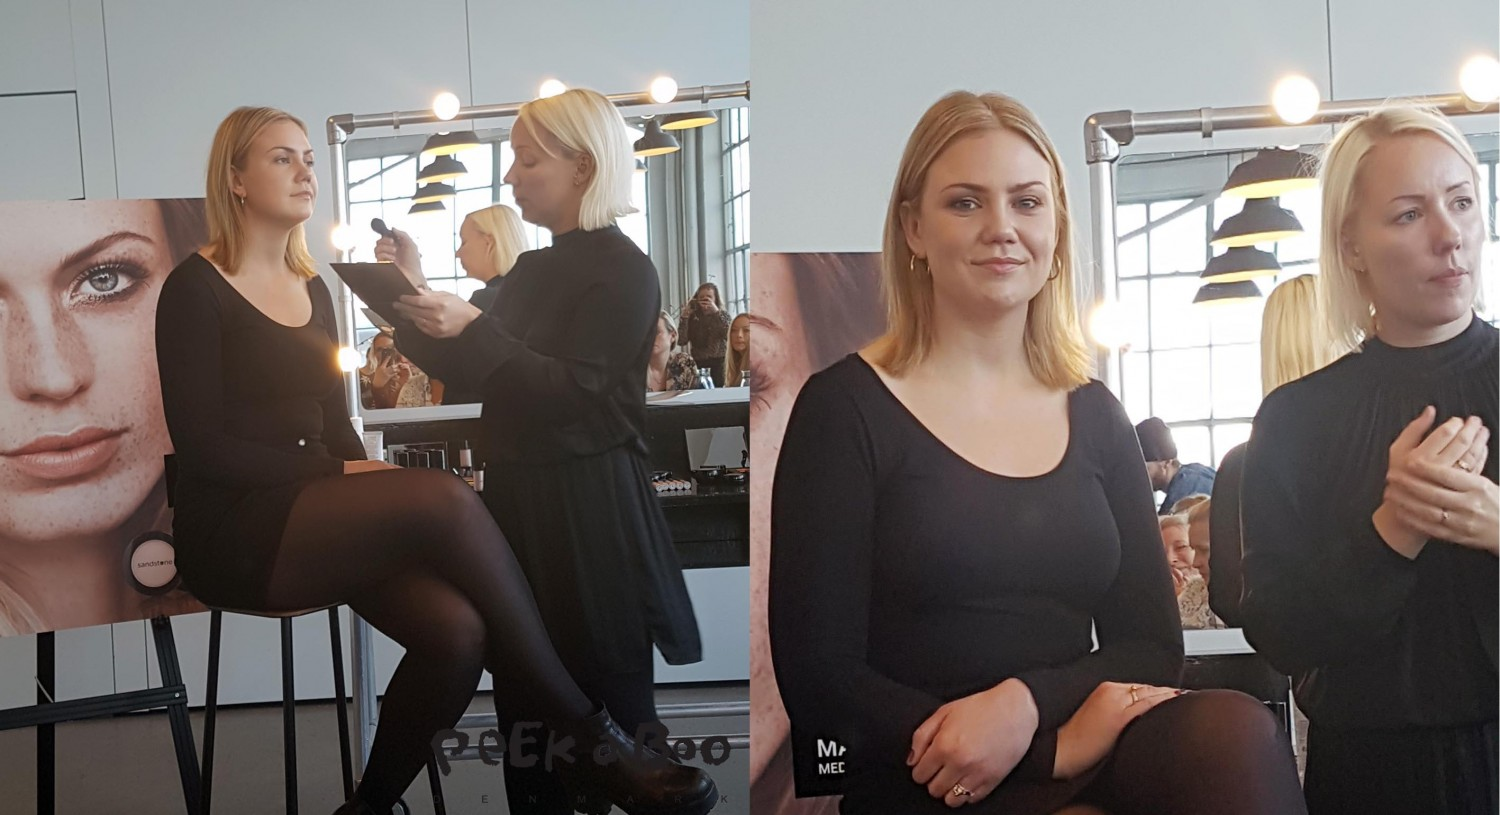 Makeup artist Liv Worm Jensen is showing how to do the natural look with Sandstone products.